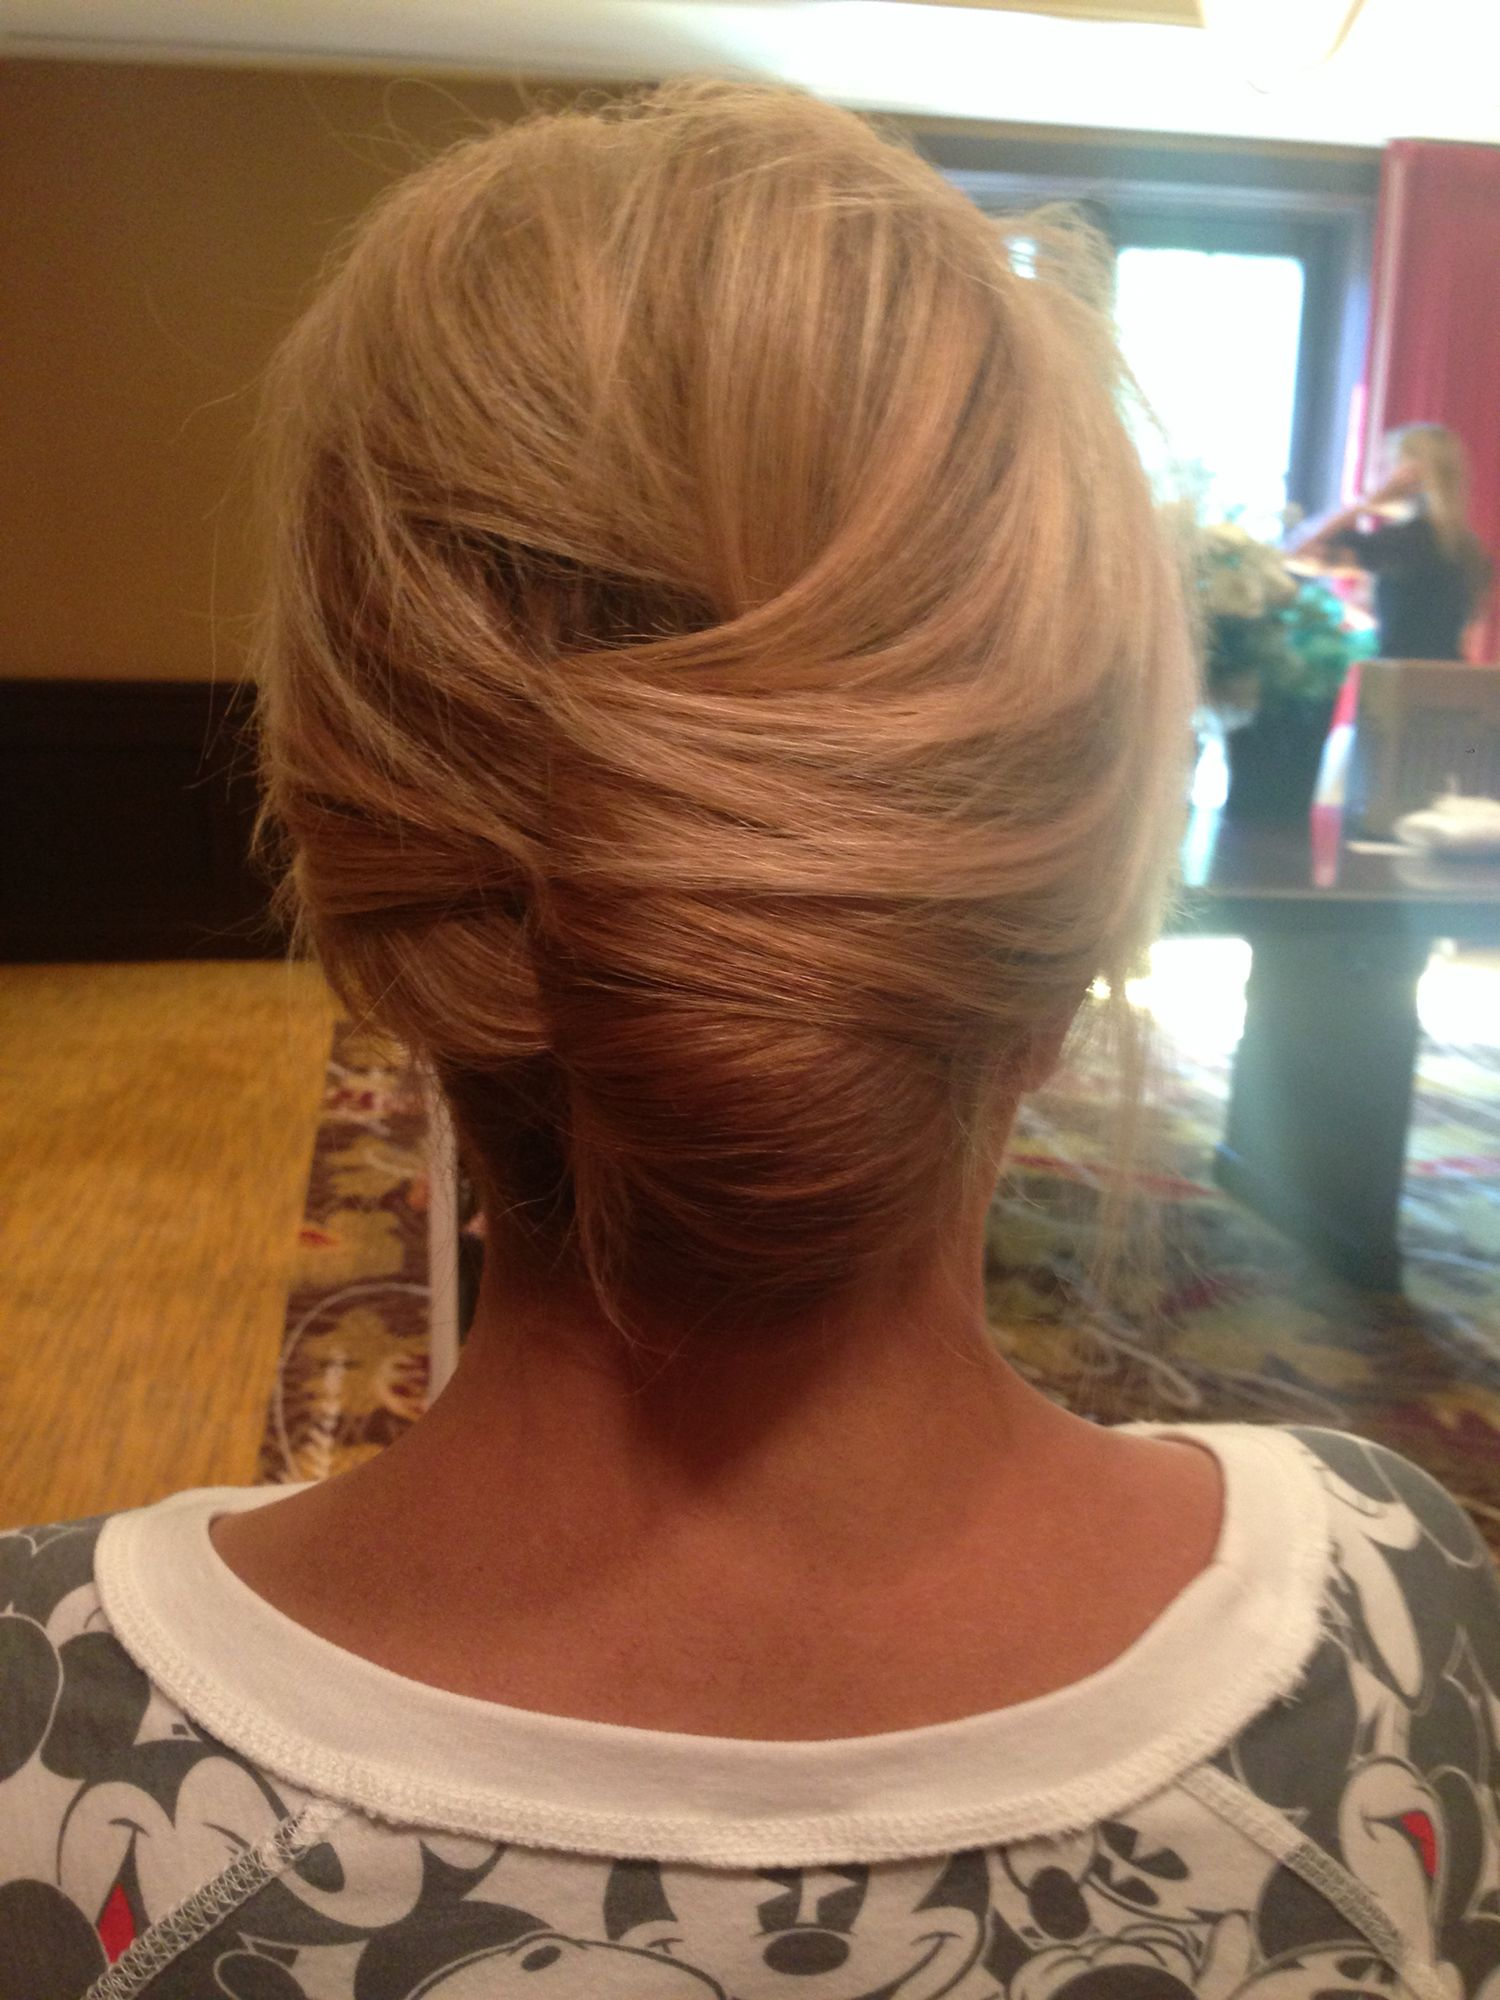 Classic French twist updobridal hairmother of the bride